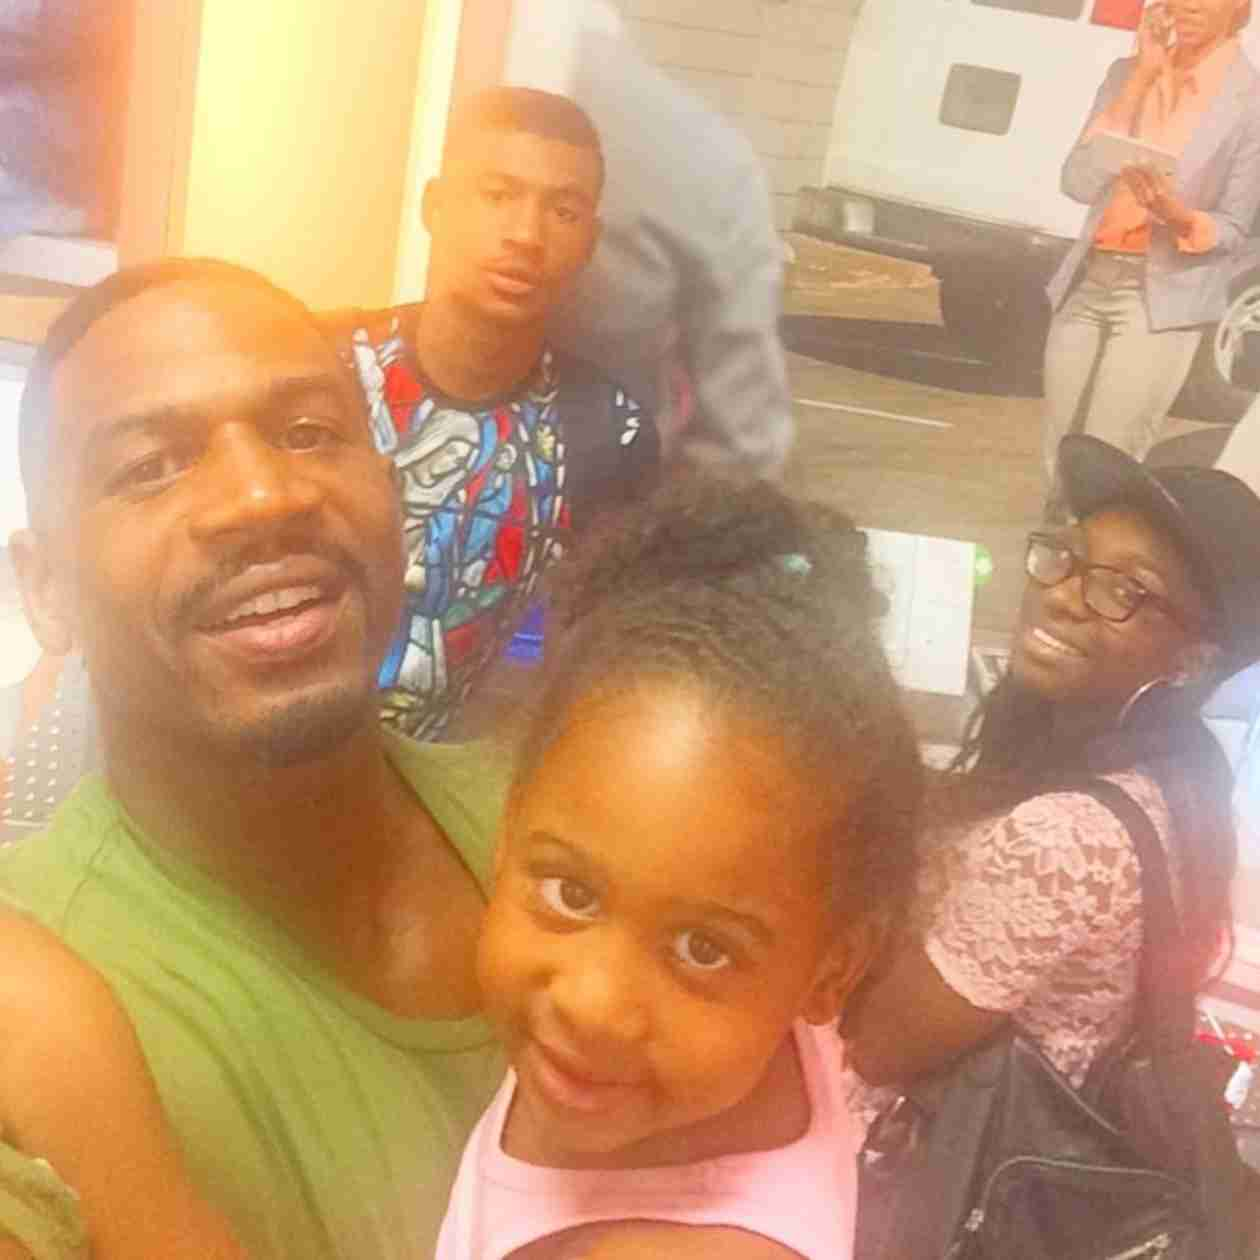 Stevie J. Has Family Day Out With Kids Amid Child Support Suit (PHOTO)